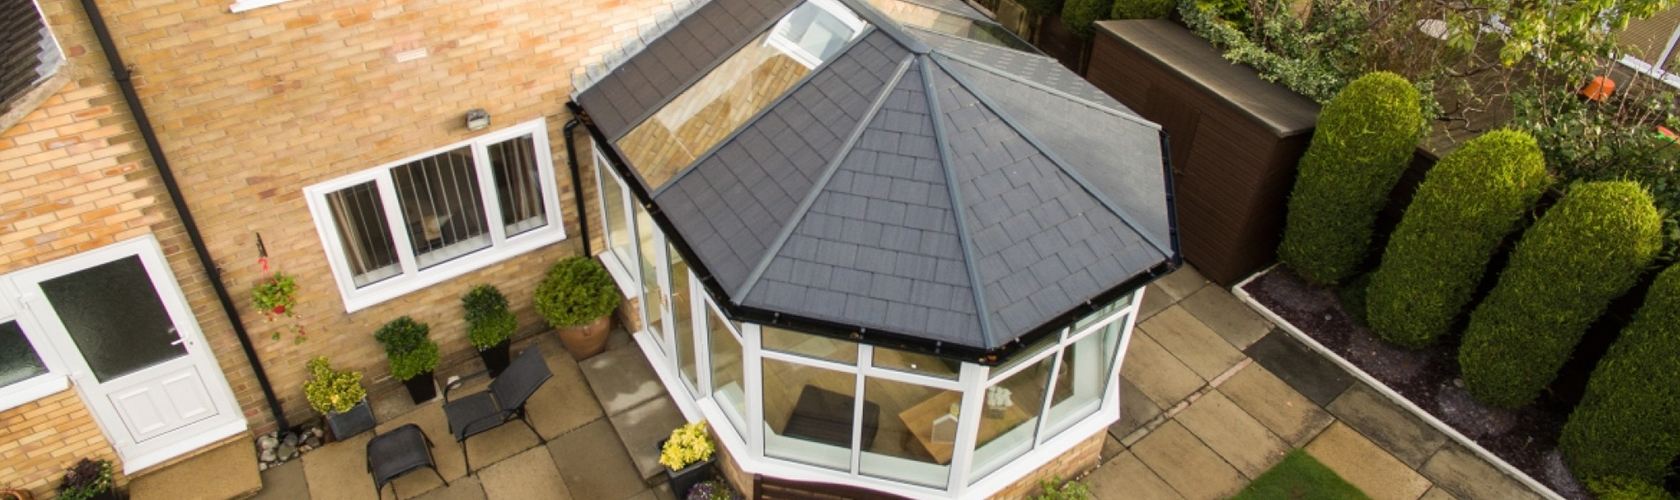 solid-roof-conservatories-banner